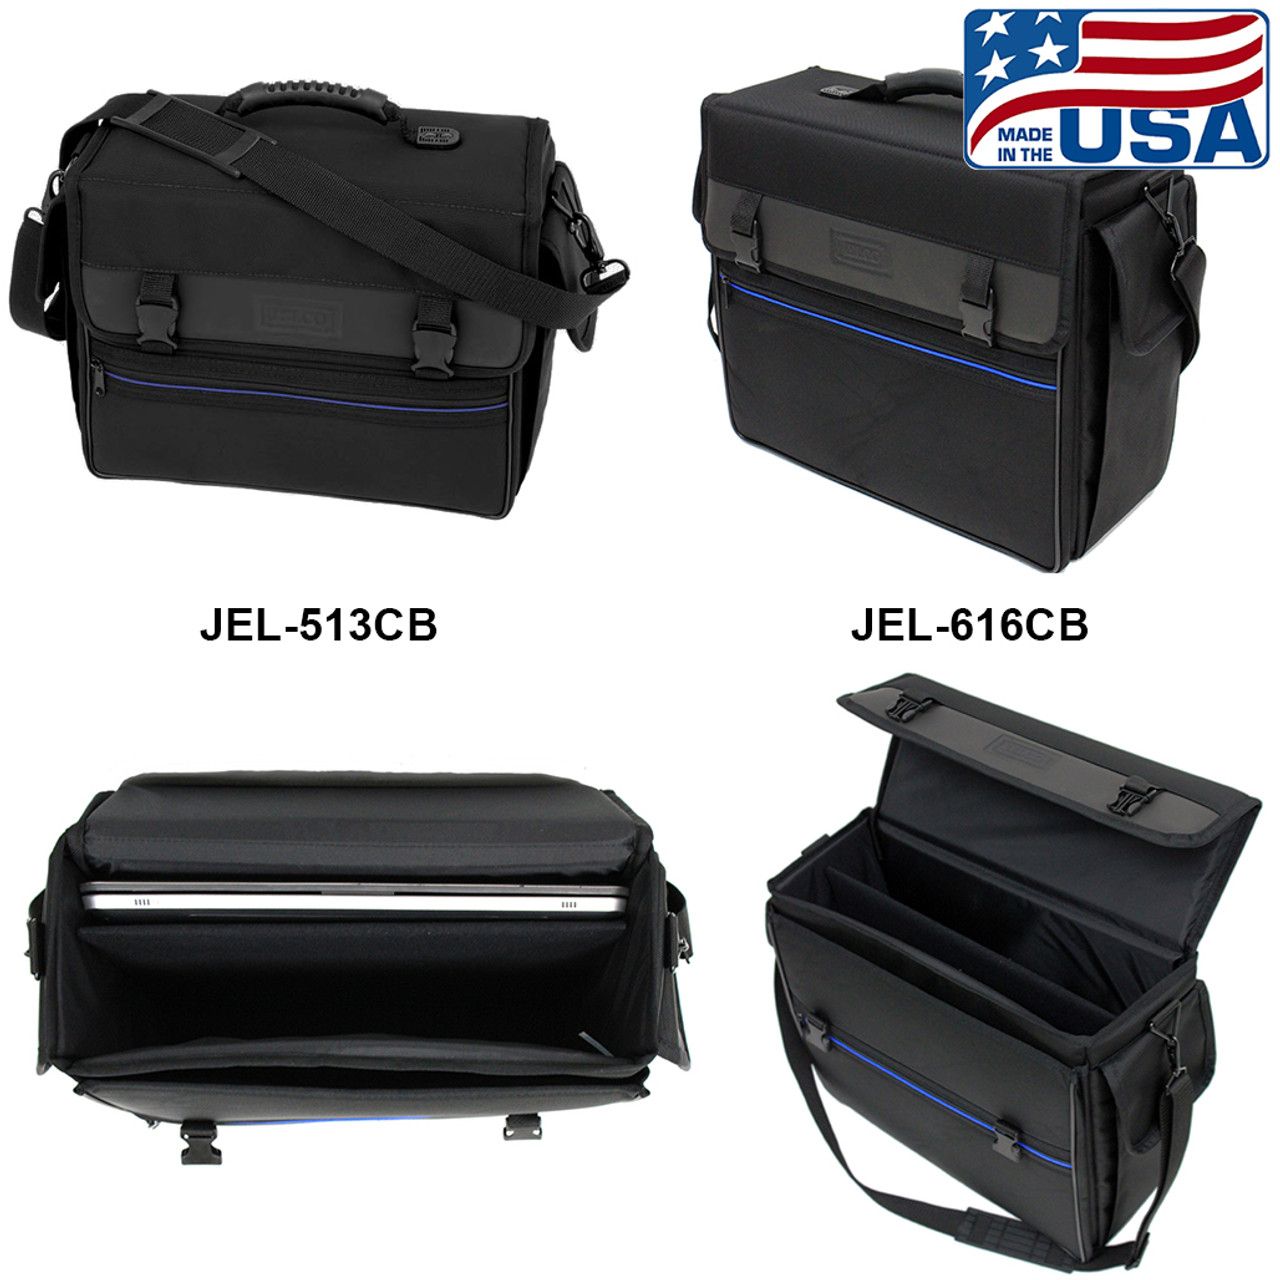 Padded Carry Bags for Projectors, Laptops, & Accessories